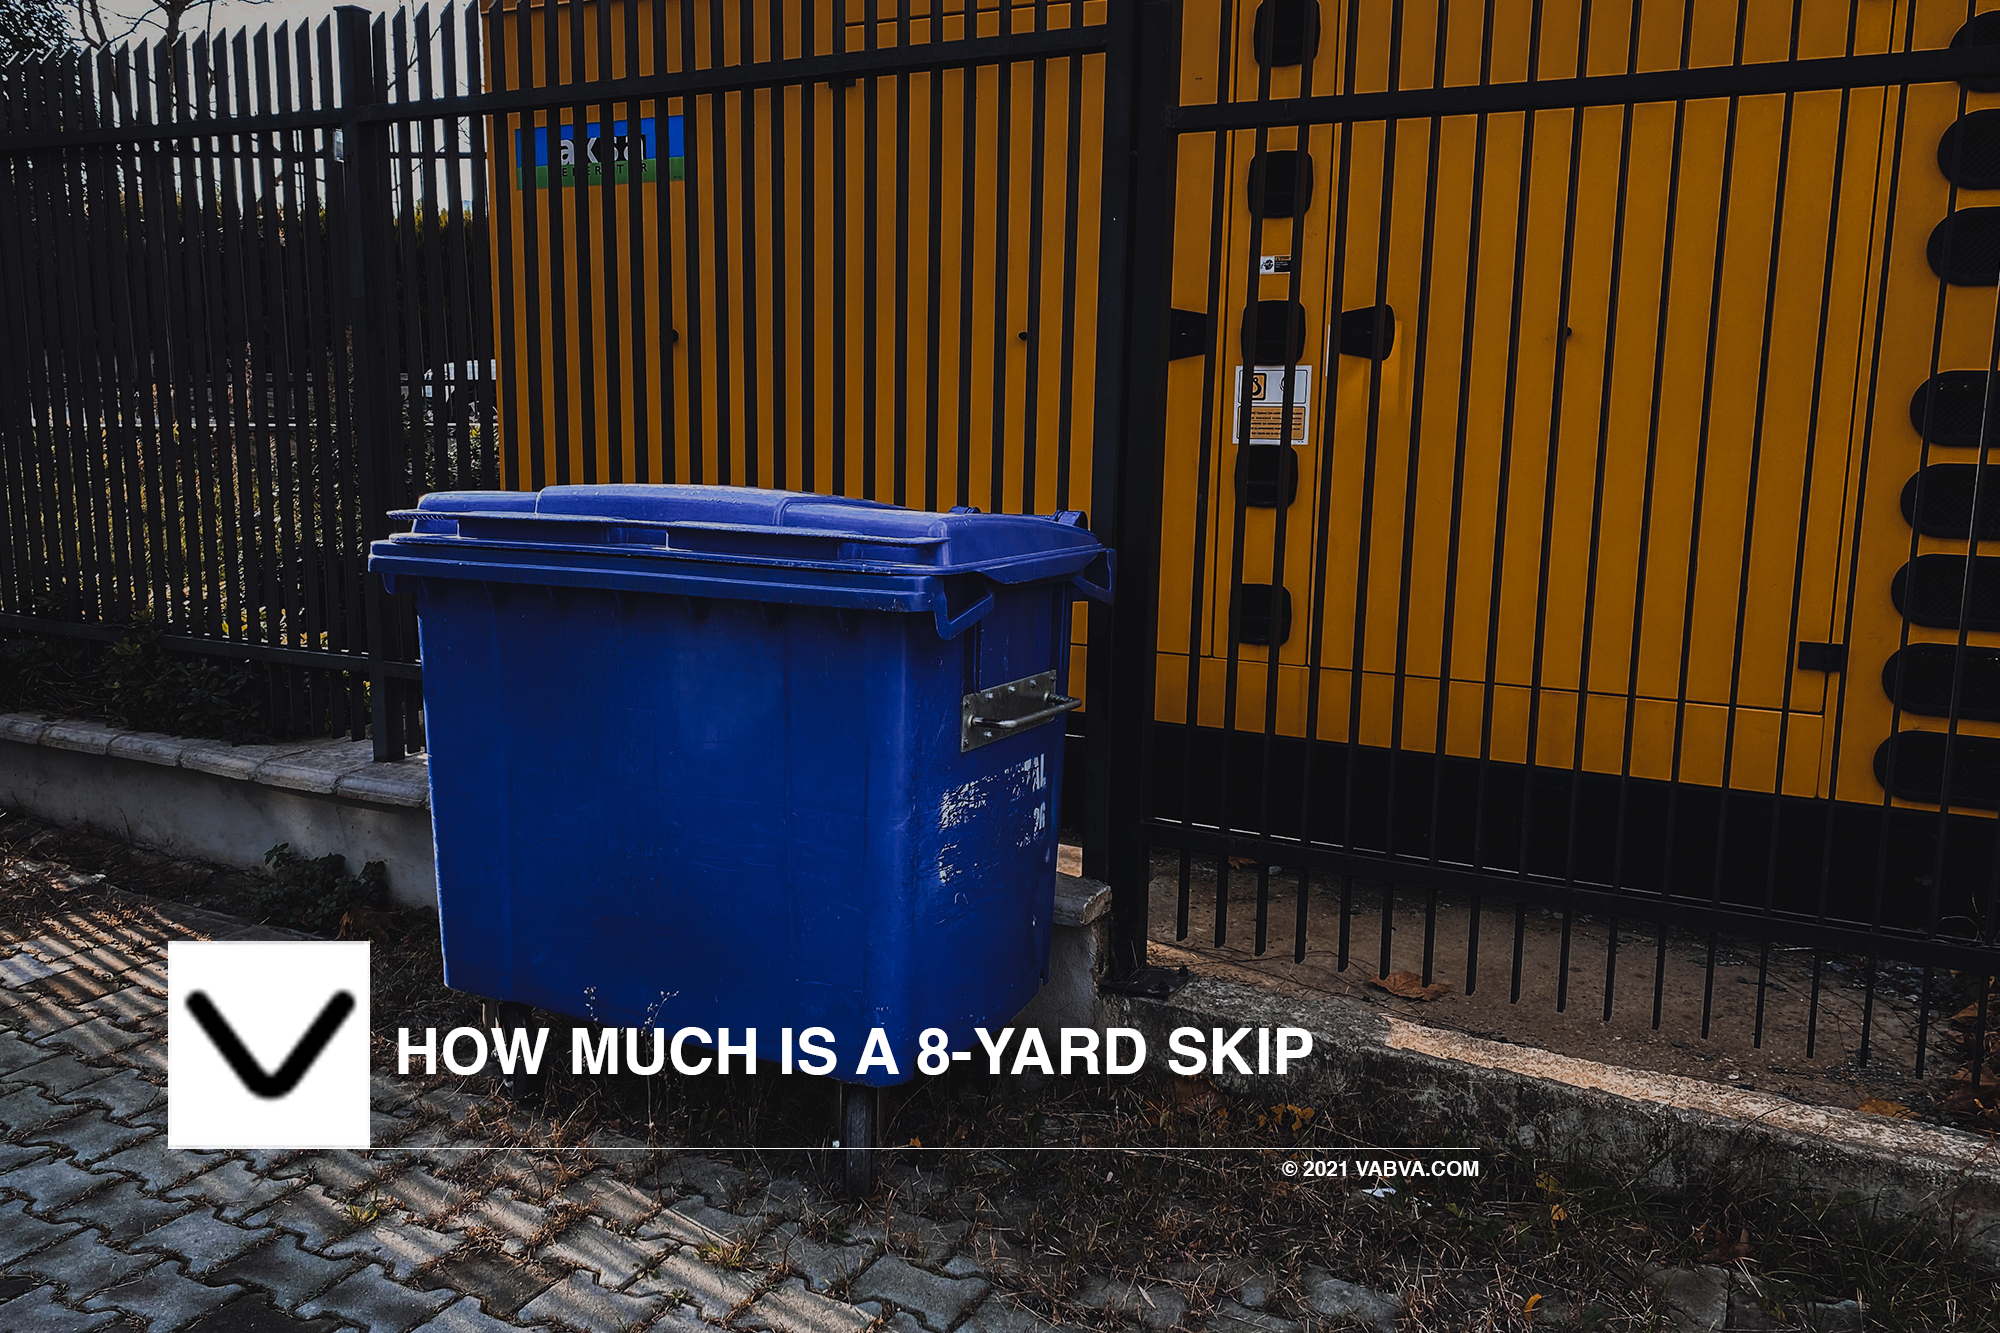 How much is a 8-Yard skip